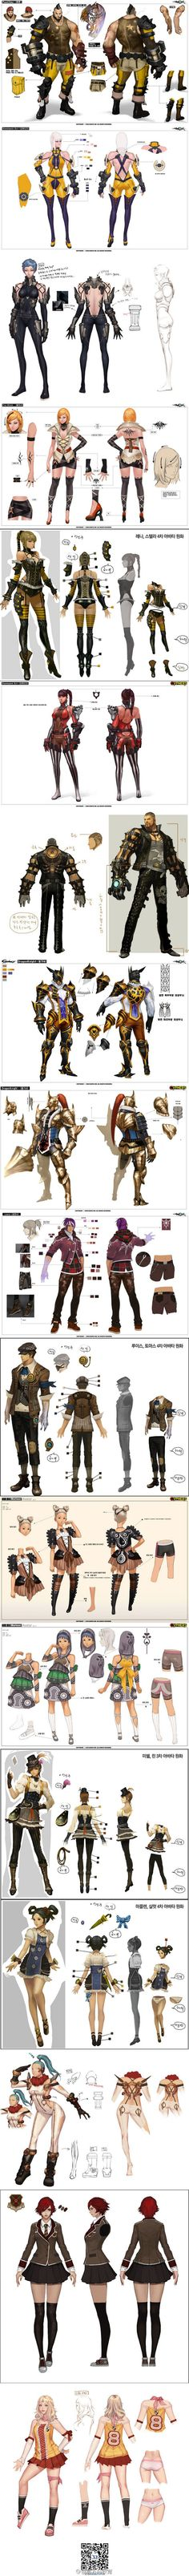 Illustration guideline for a group of characters Character Design Cartoon, 2d Character, Character Modeling, Character Creation, Character Design References, Character Design Inspiration, Character Concept, Concept Art, Fantasy Characters